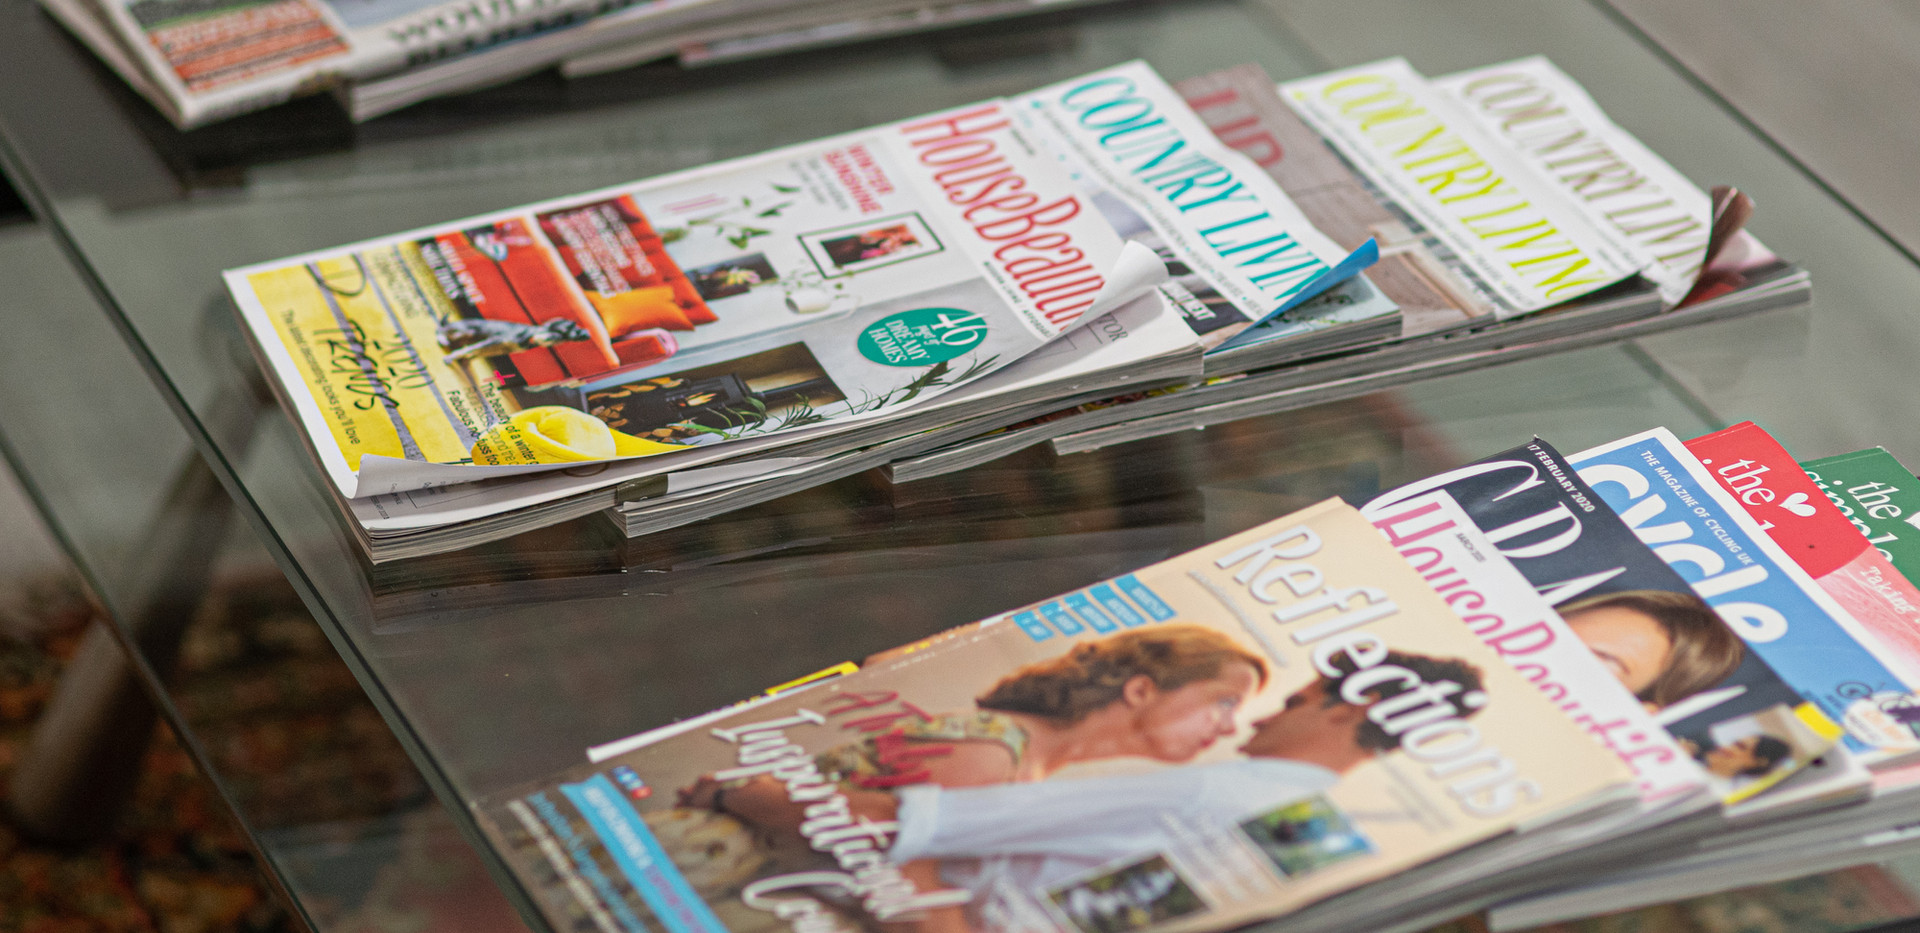 Magazines to browse.